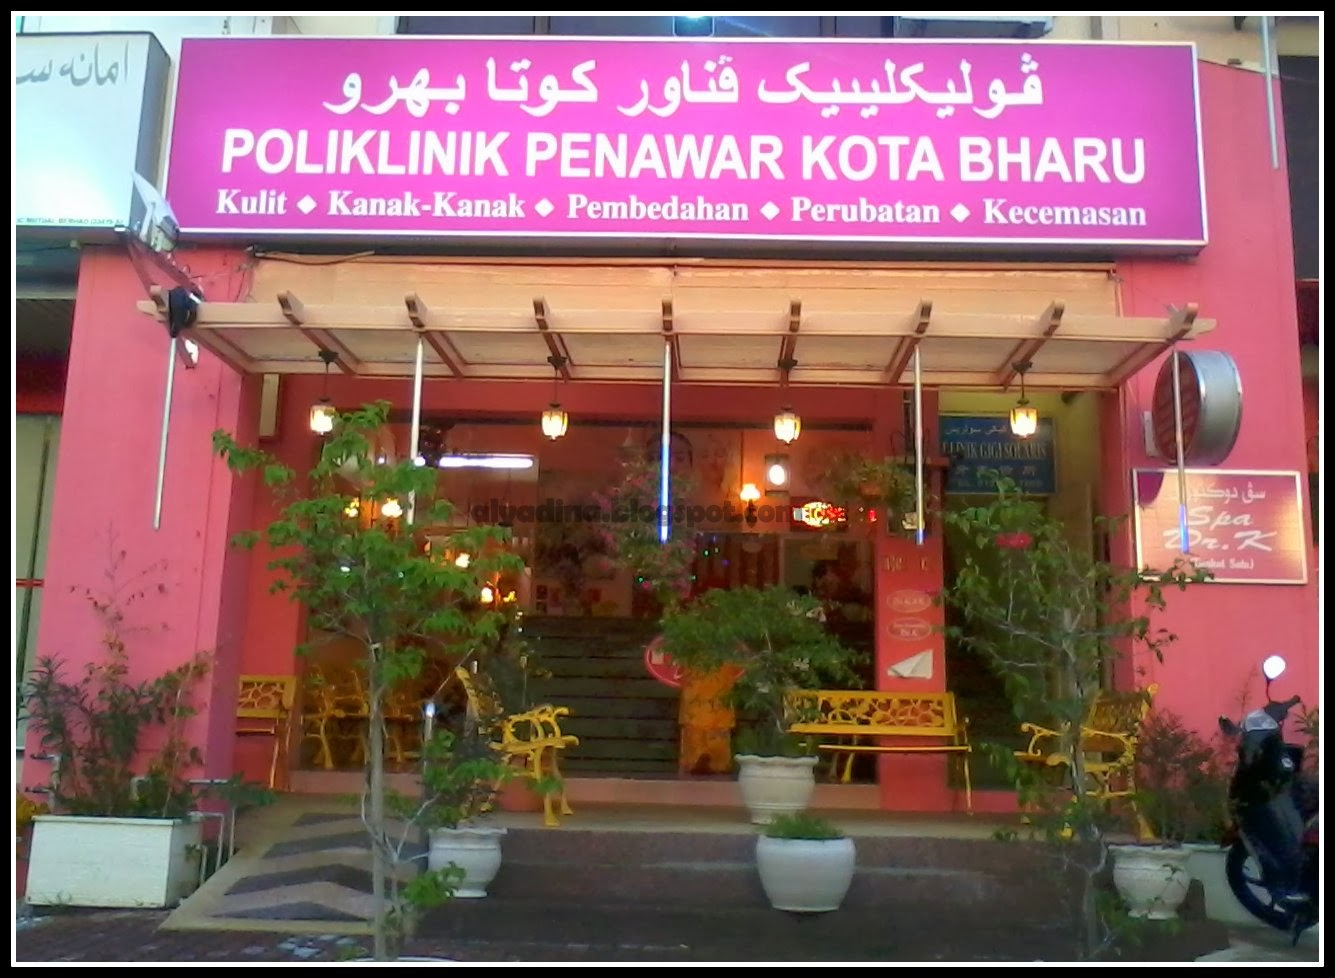 kota bharu bbw personals With city views, staycity apartments - kota bharu city point has accommodation with a kitchenette located in kota bharu free wifi is available all units feature air conditioning and a flat-screen tv a car rental service is available at this property.